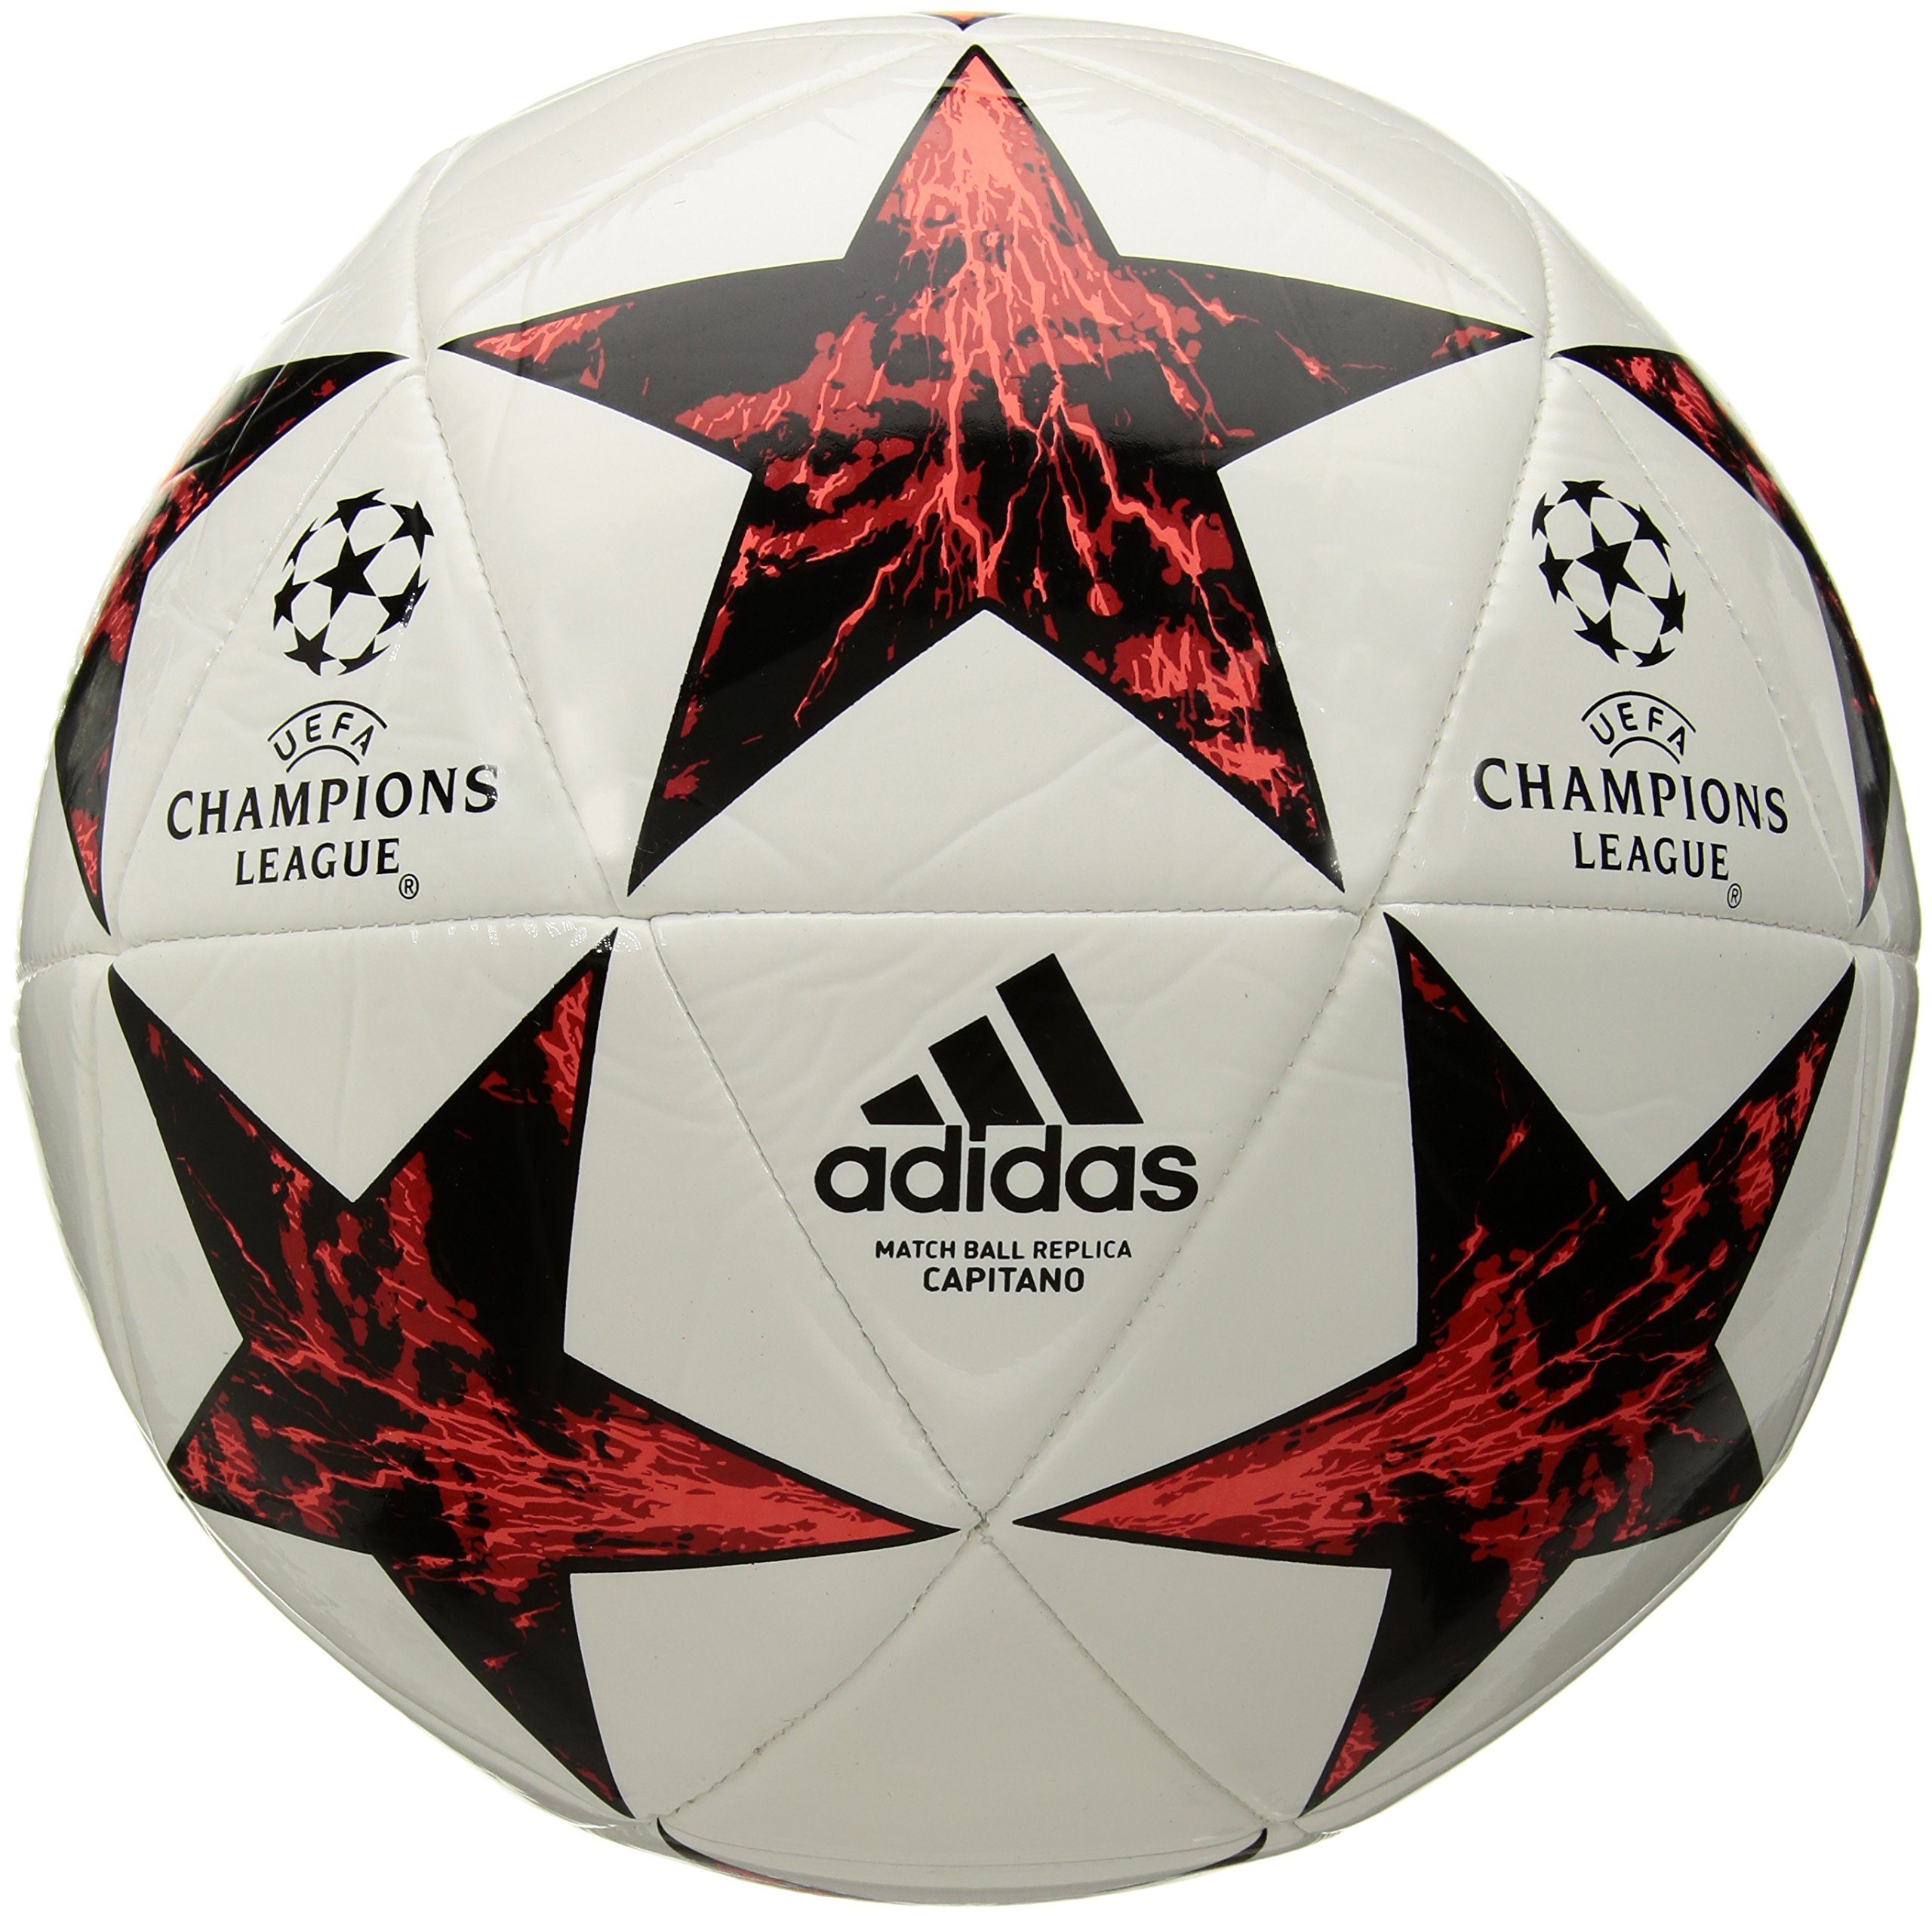 053b11f24 Galleon - Adidas Performance Champions League Finale Capitano Soccer Ball,  White/Black/Victory Red/Solar Red/Pink, Size 5